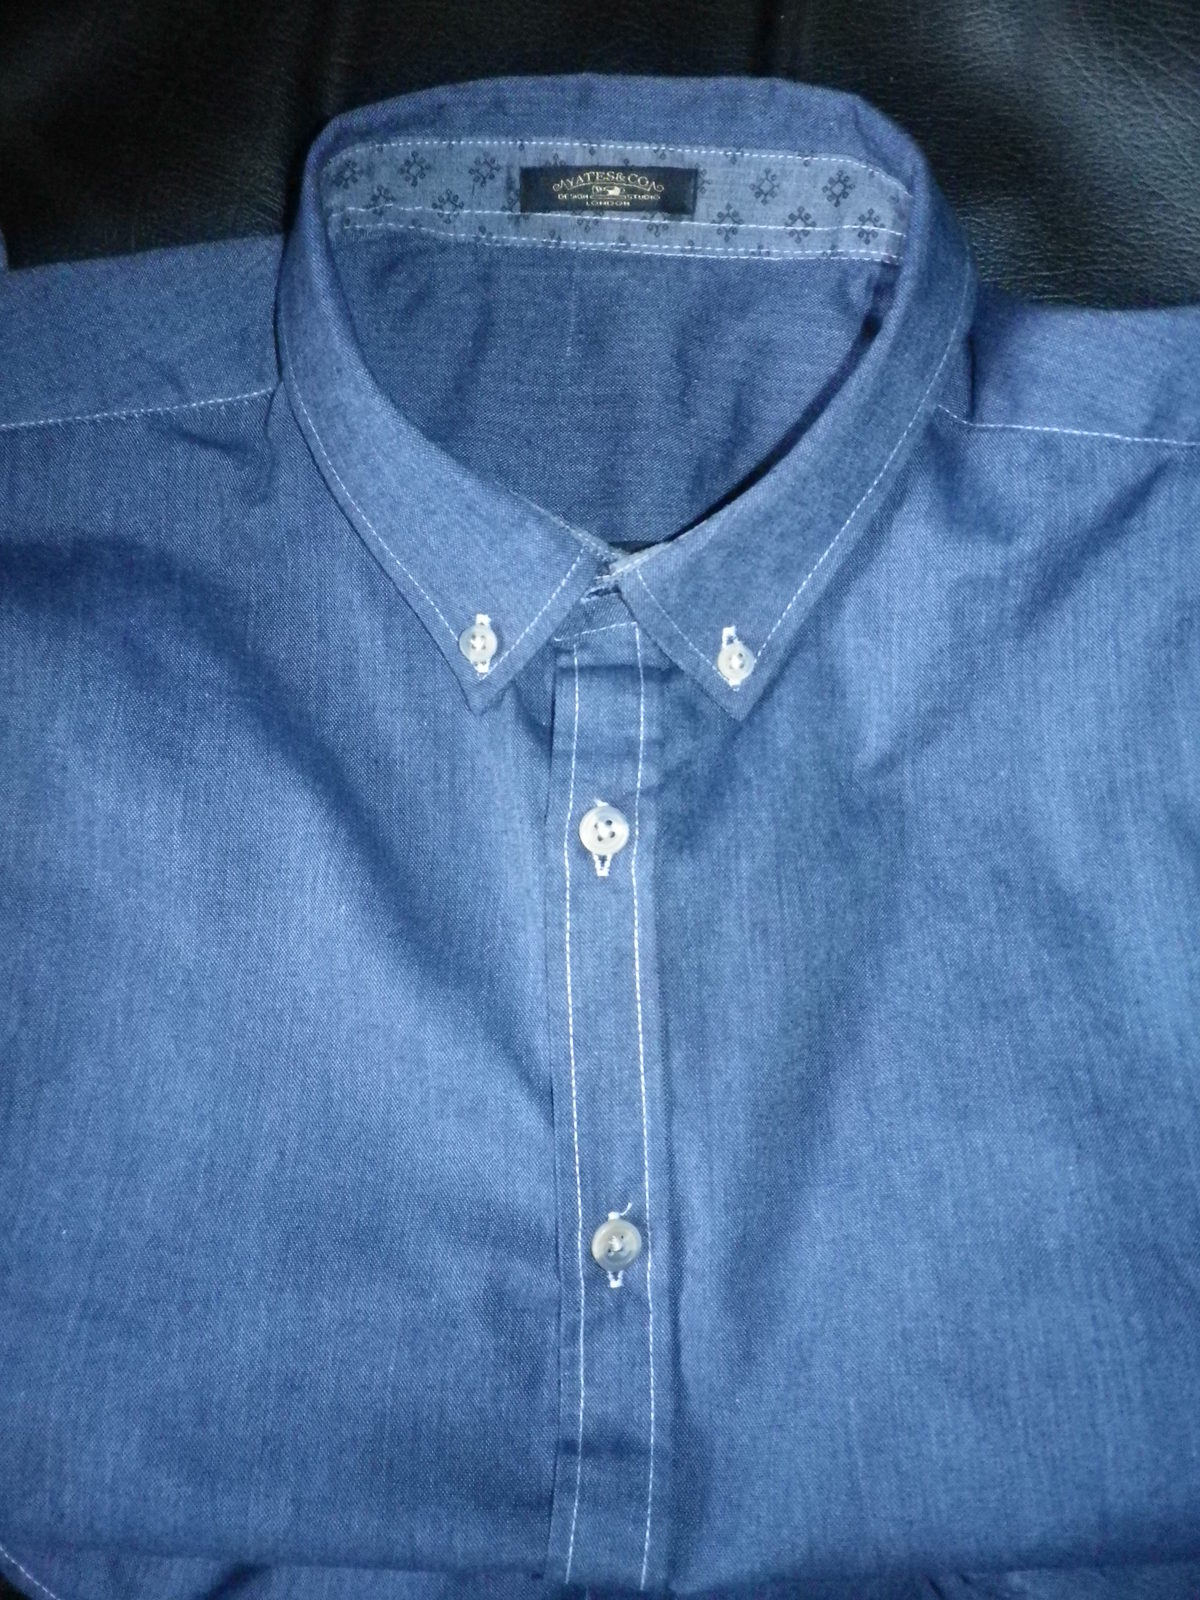 Primary image for Mens button down casual shirt, denim  blue, pre washed fabric , great value